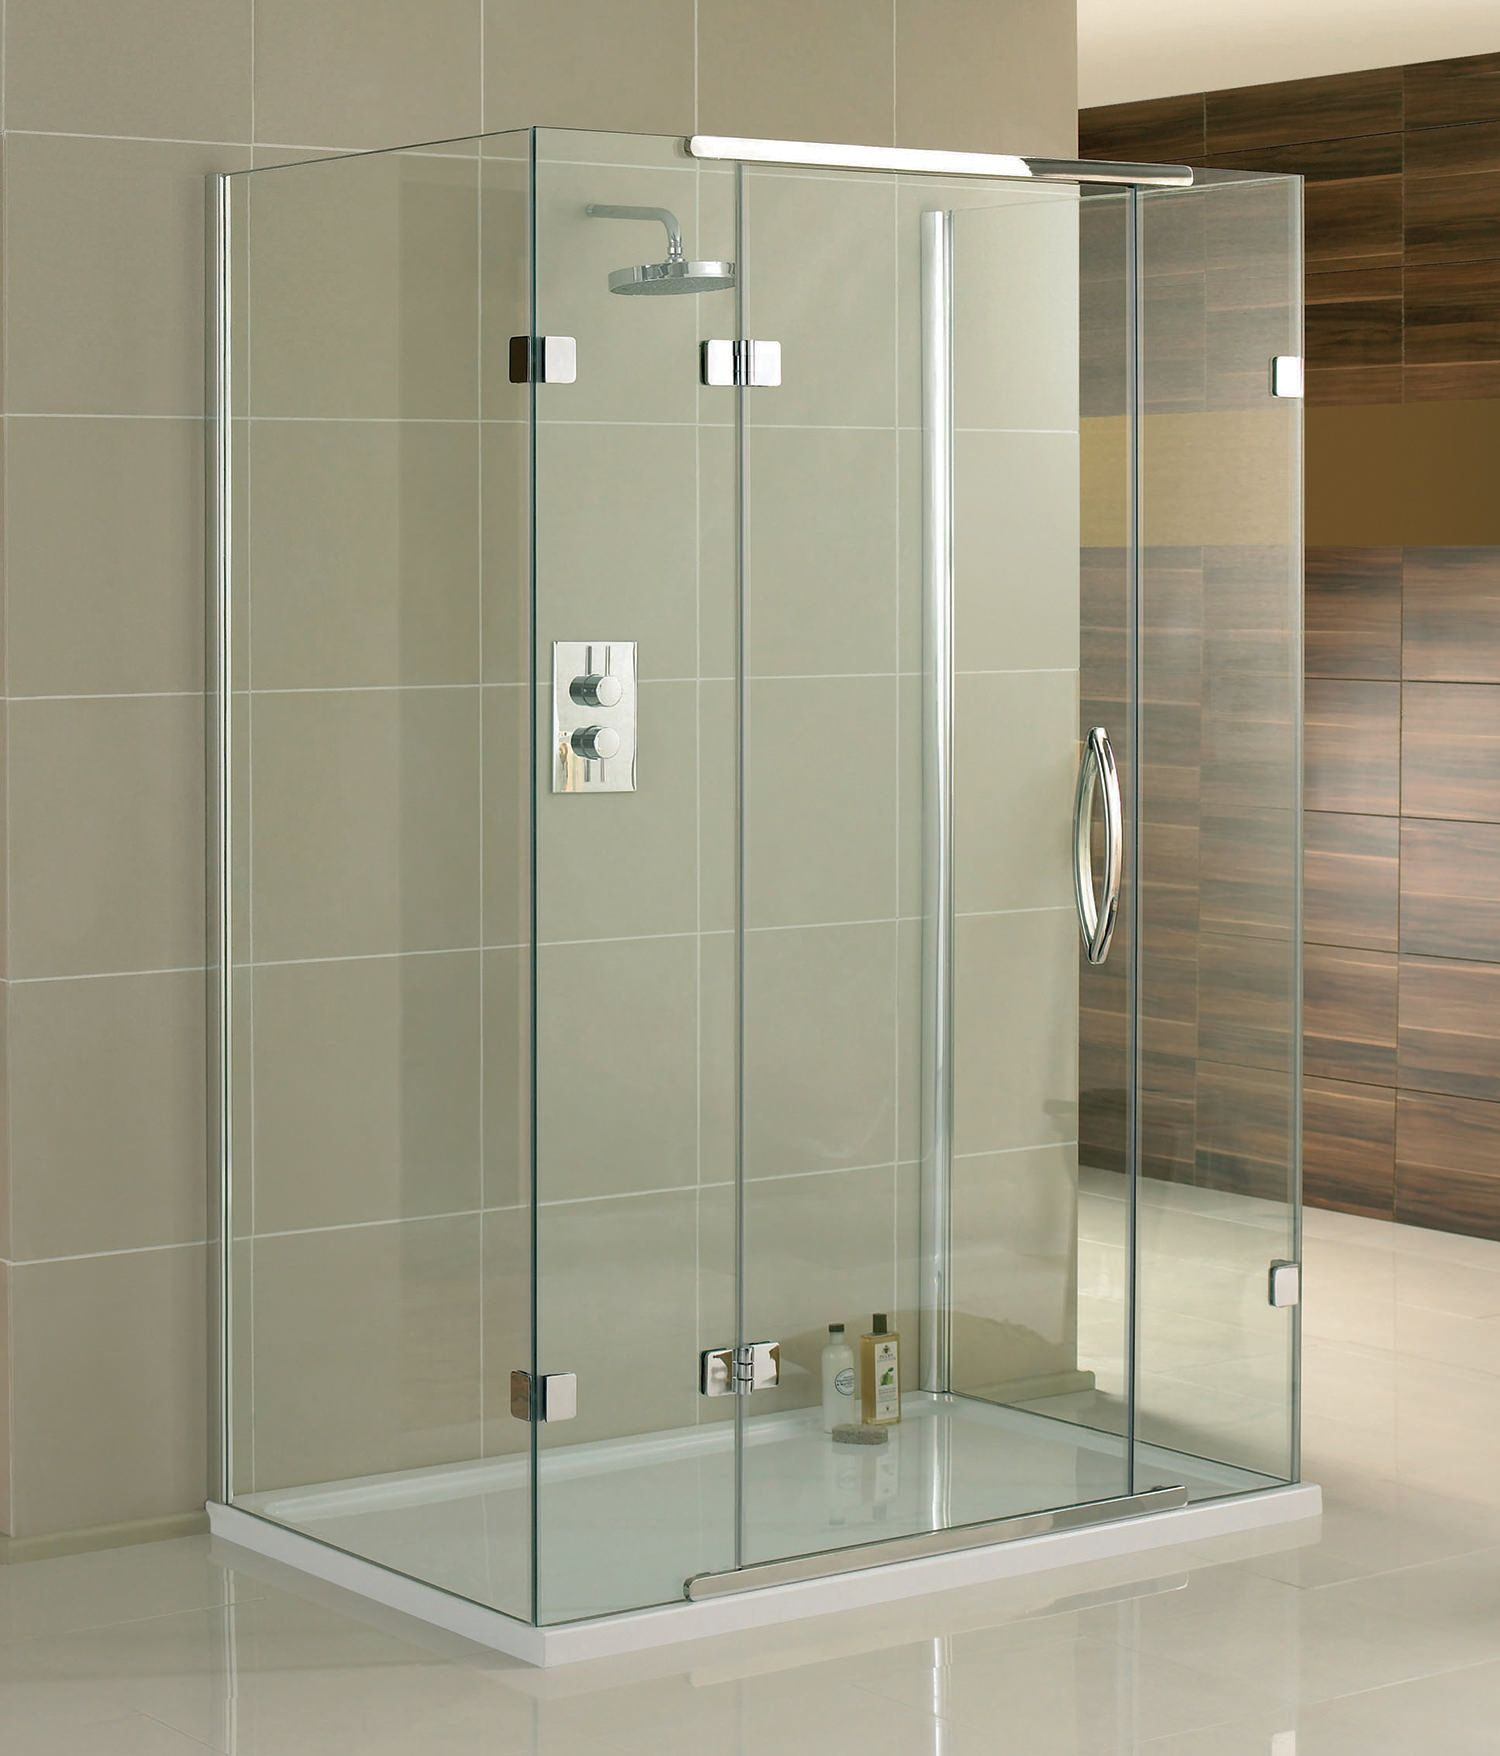 Aquadart Inline 3 Sided Hinged Door Enclosure 900 X 800mm Aq1034 Frameless Shower Enclosures Shower Enclosure Frameless Shower Doors